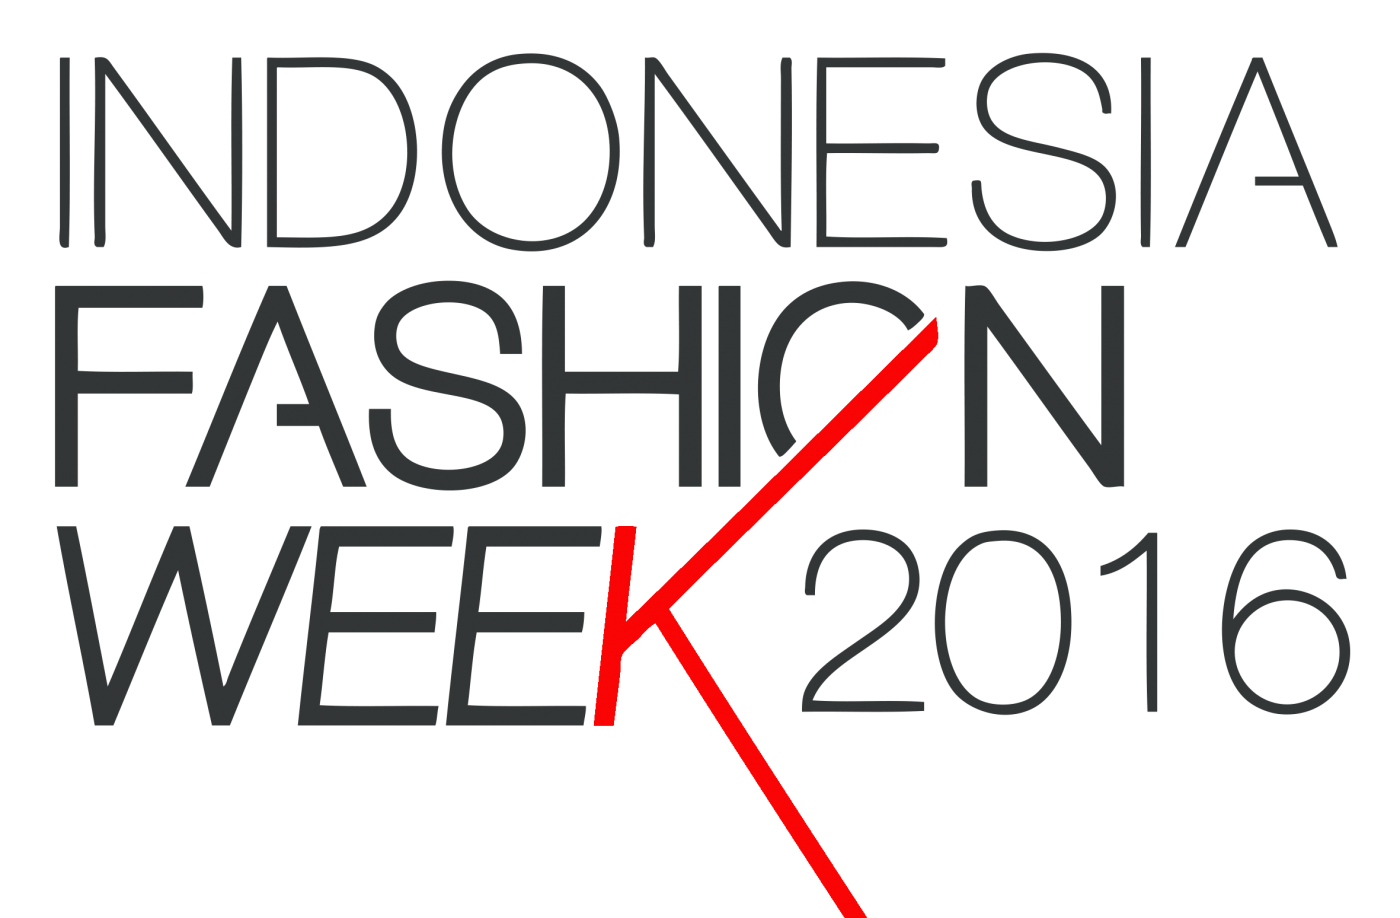 Indonesia fashion week 2017 png. Eng does too diver